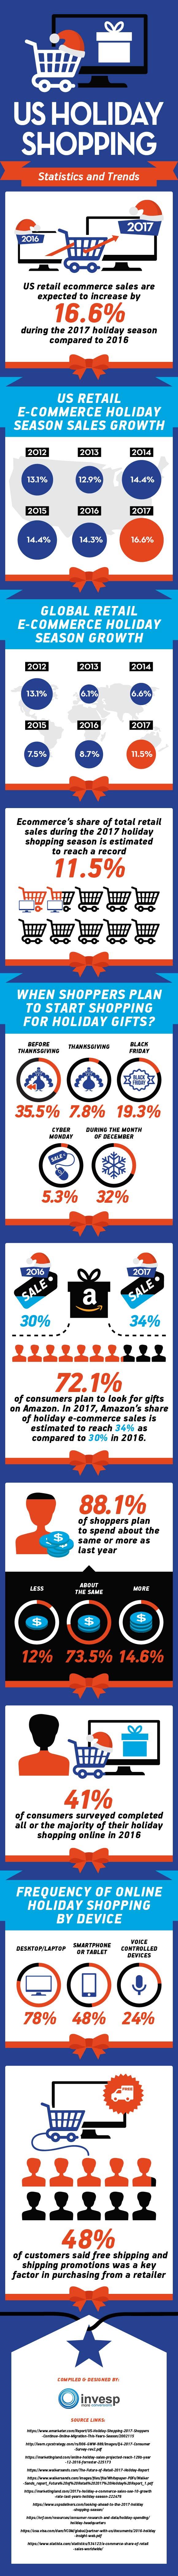 US Holiday Shopping Statistics and Trends